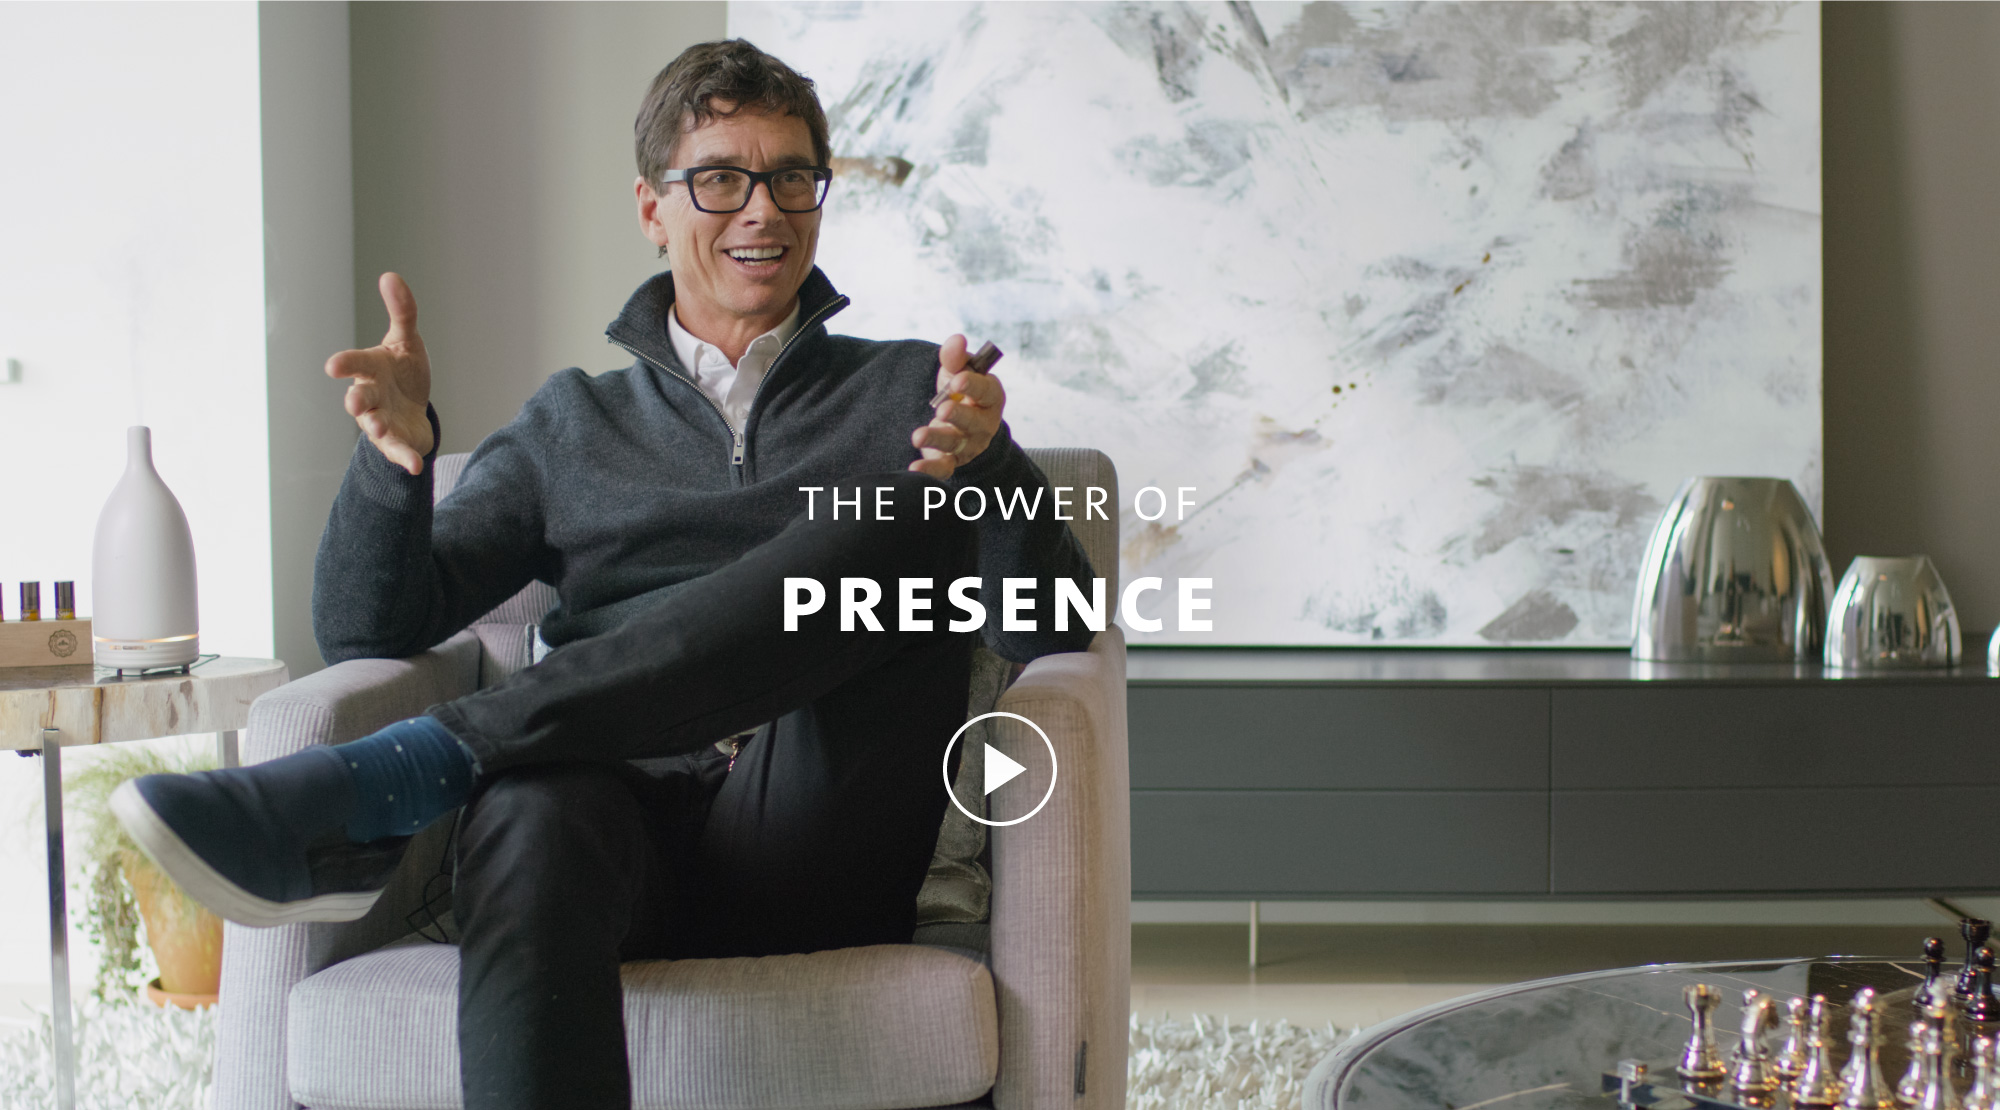 Jean-Pierre explains how being present can transform your life.